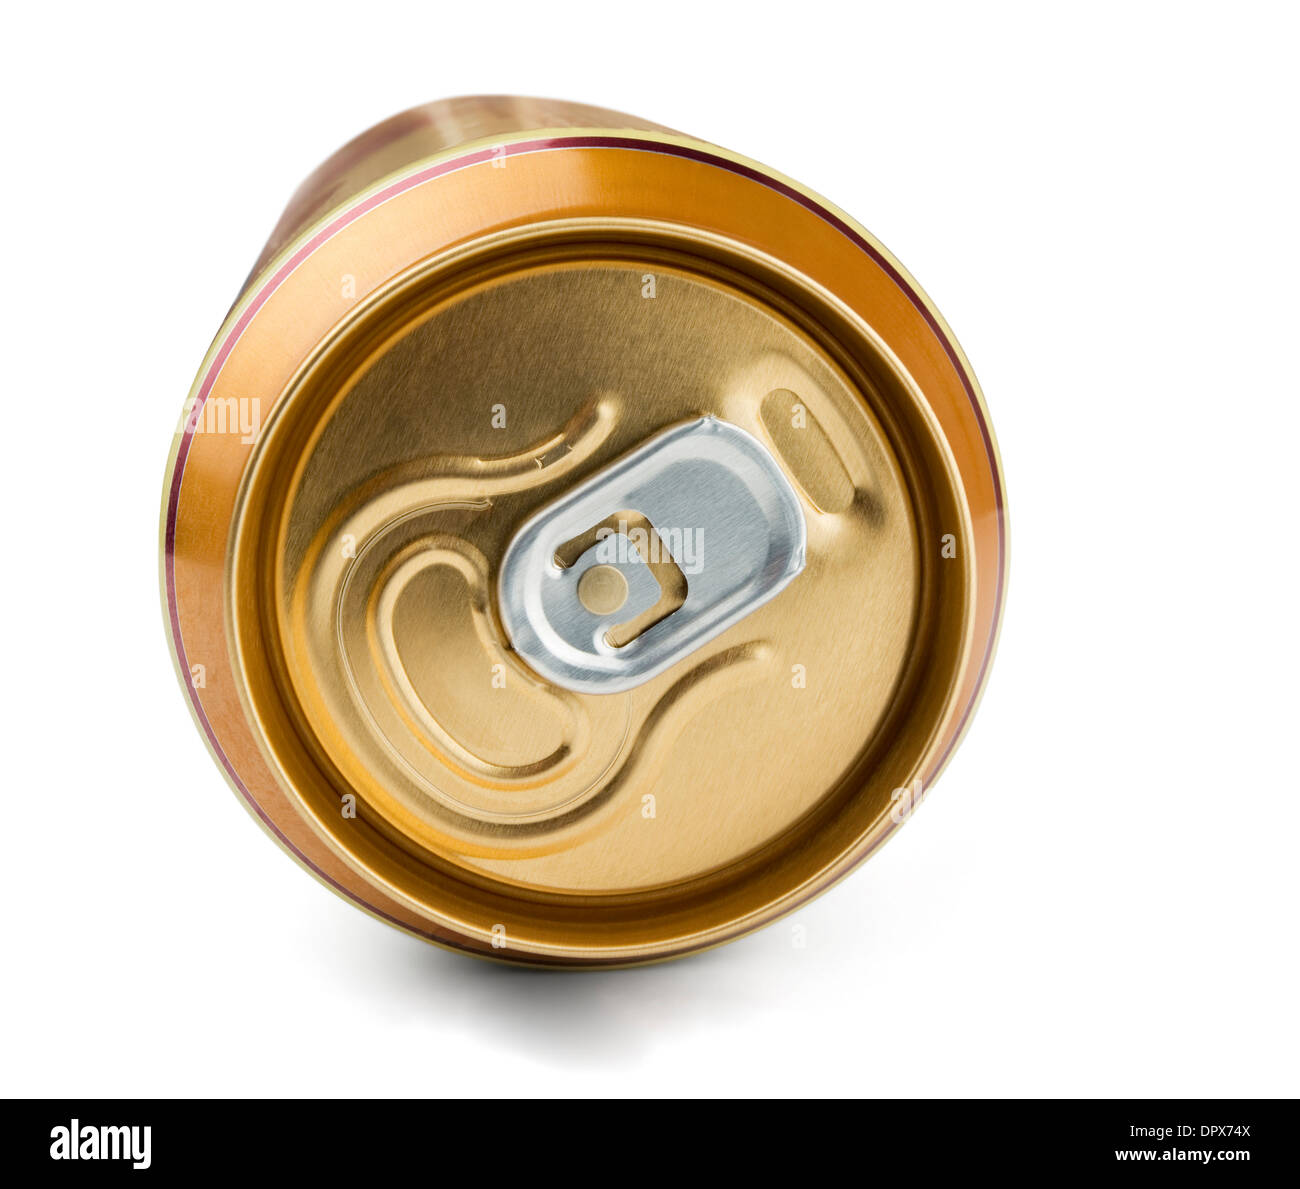 Top of golden aluminum drink can isolated on white - Stock Image